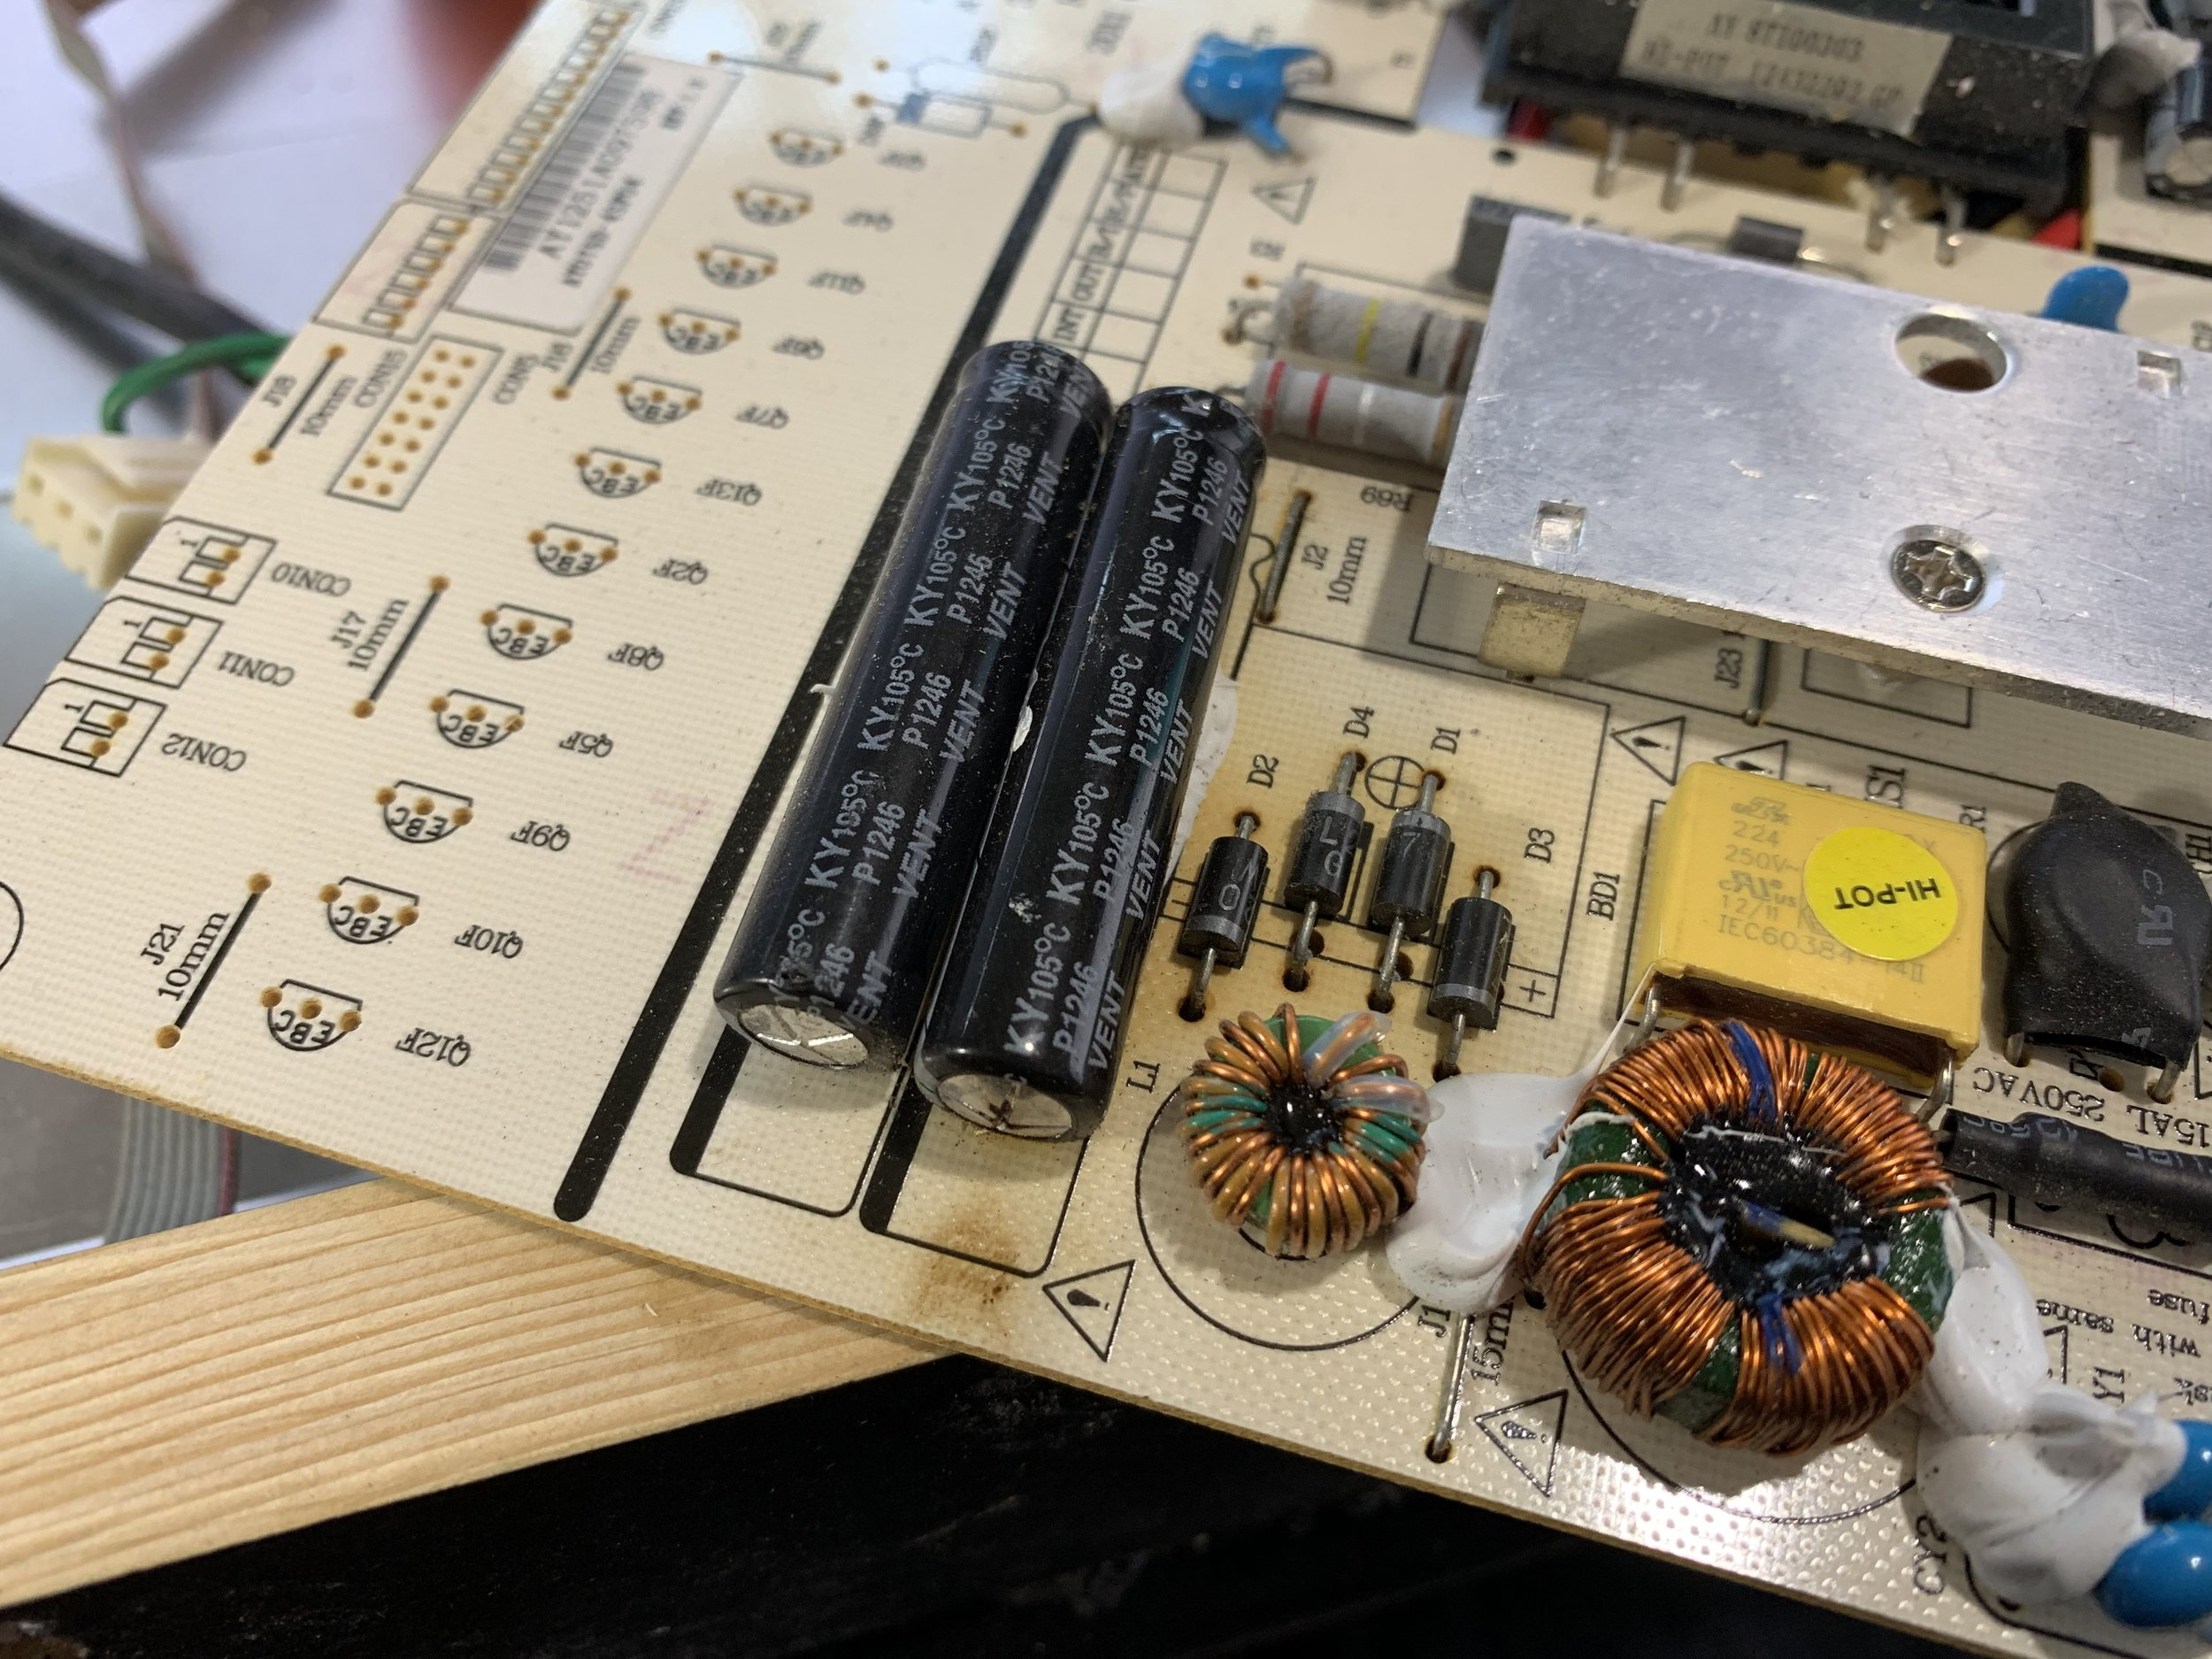 The rightmost large capacitor has a bulge and burned out end.  The four diodes next to it also read as bad when tested with a multimeter.